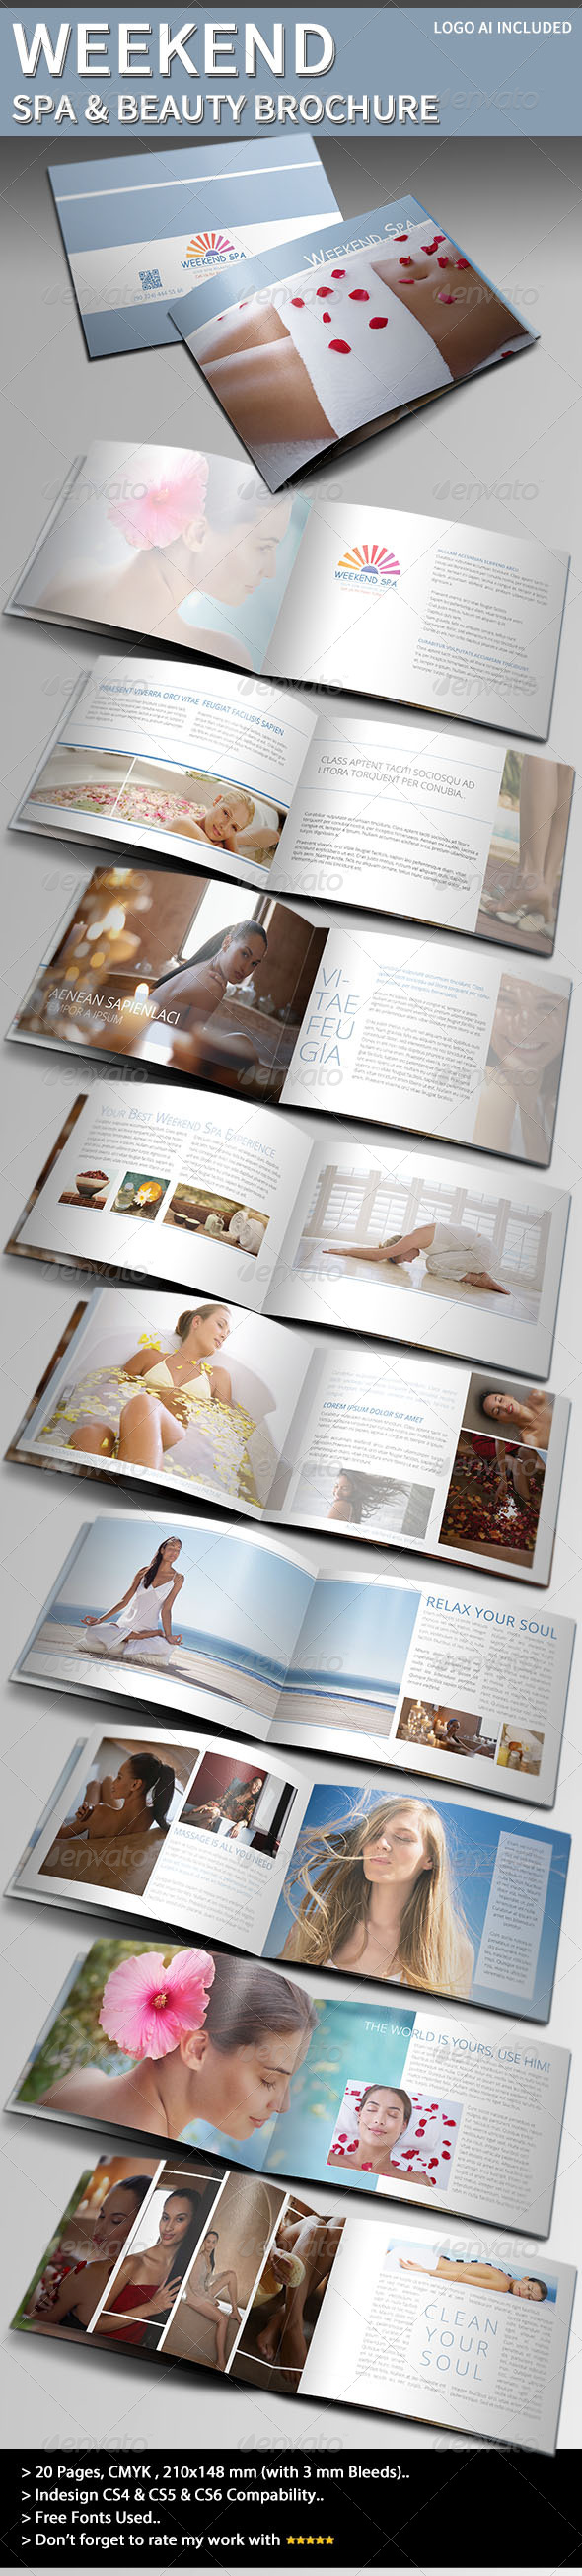 Weekend Spa & Beauty Brochure - Informational Brochures